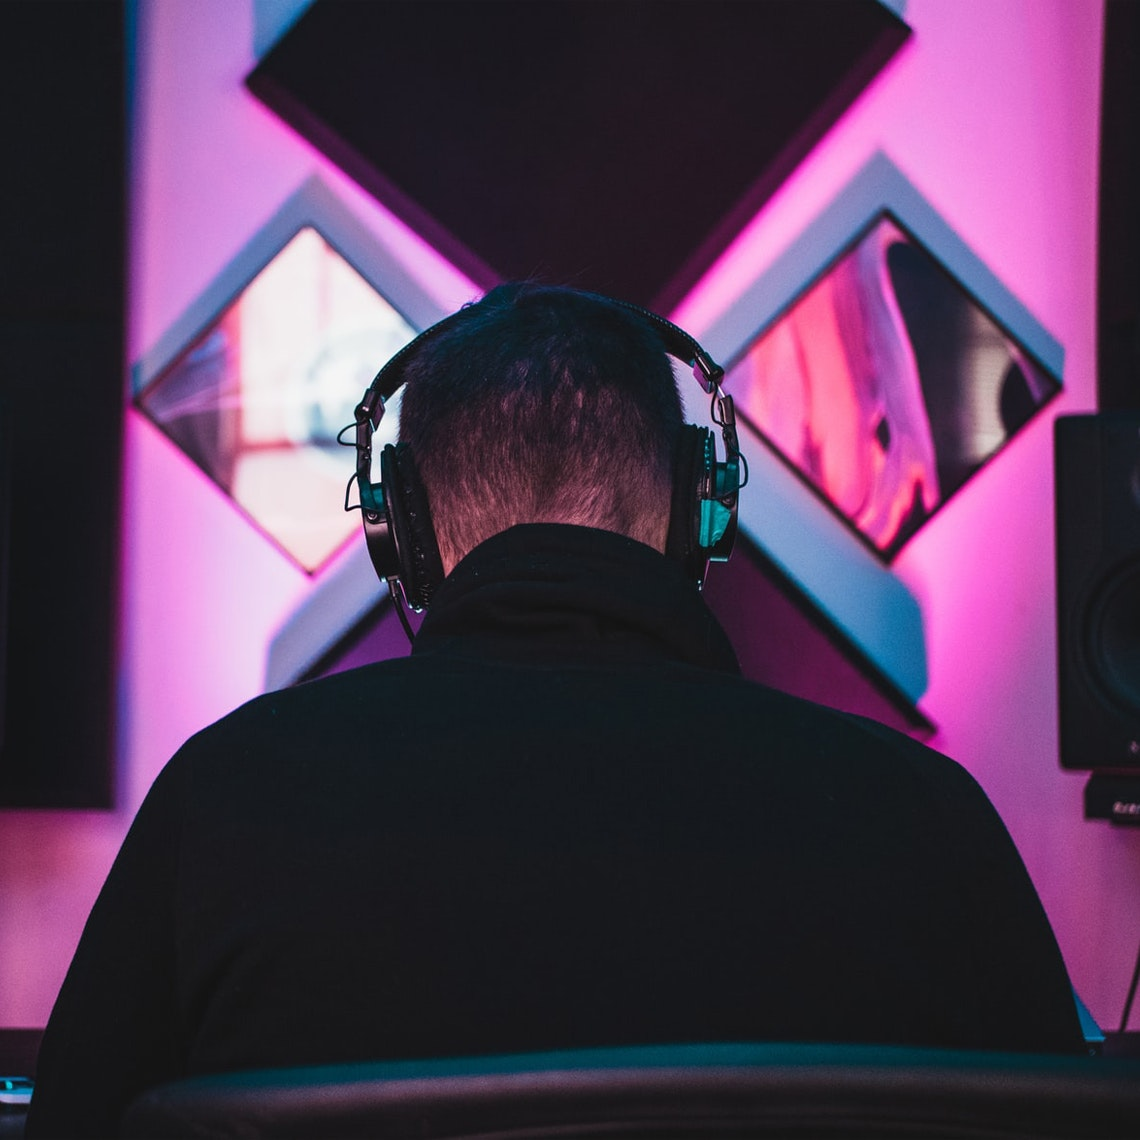 A producer in a studio working on music